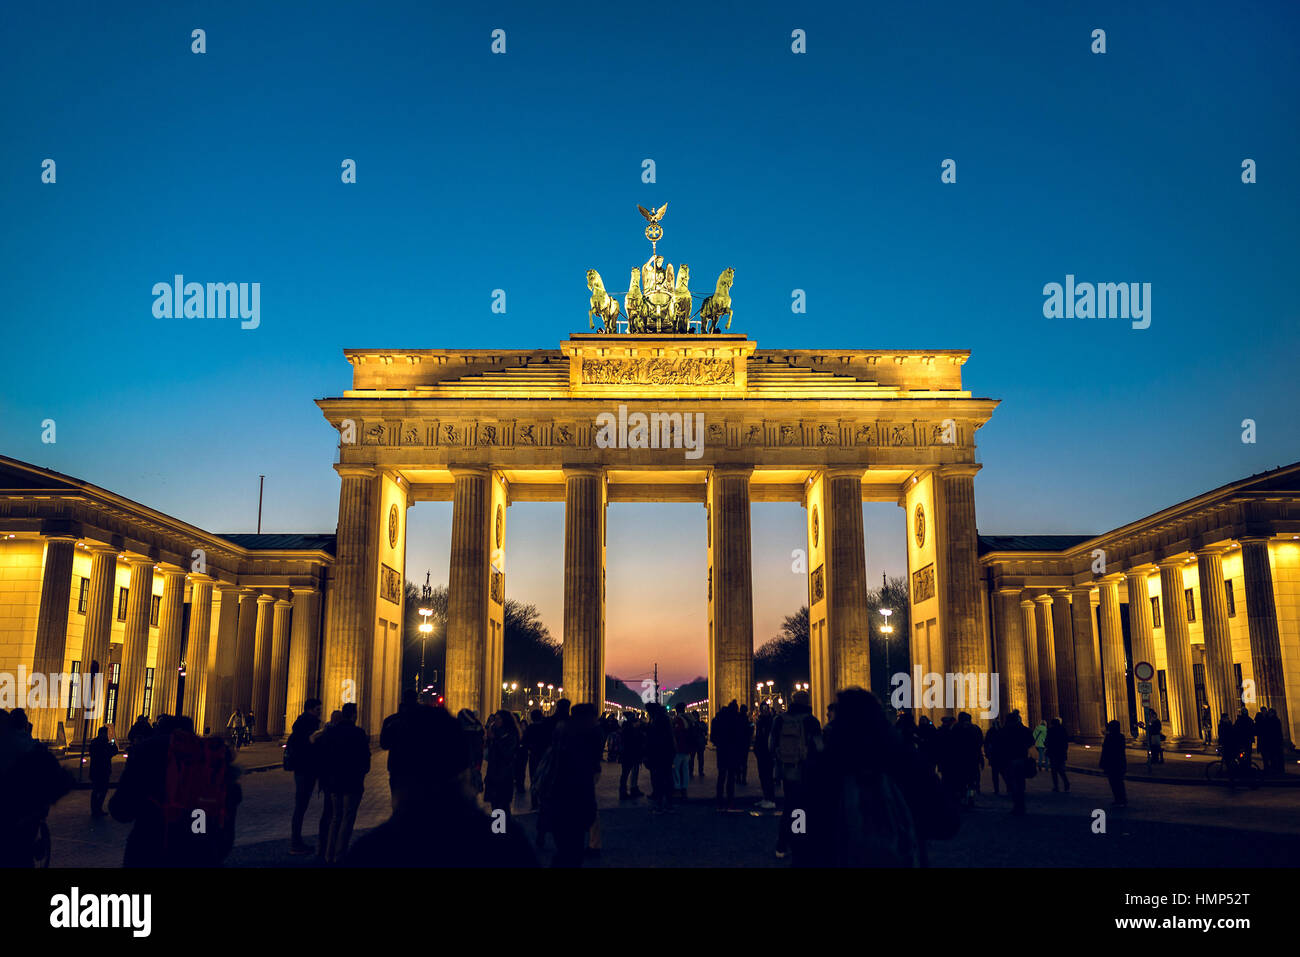 Berlin, Germany - January 22, 2017 -  Brandenburg gate in Berlin, Germany during winter evening. Toned image. - Stock Image